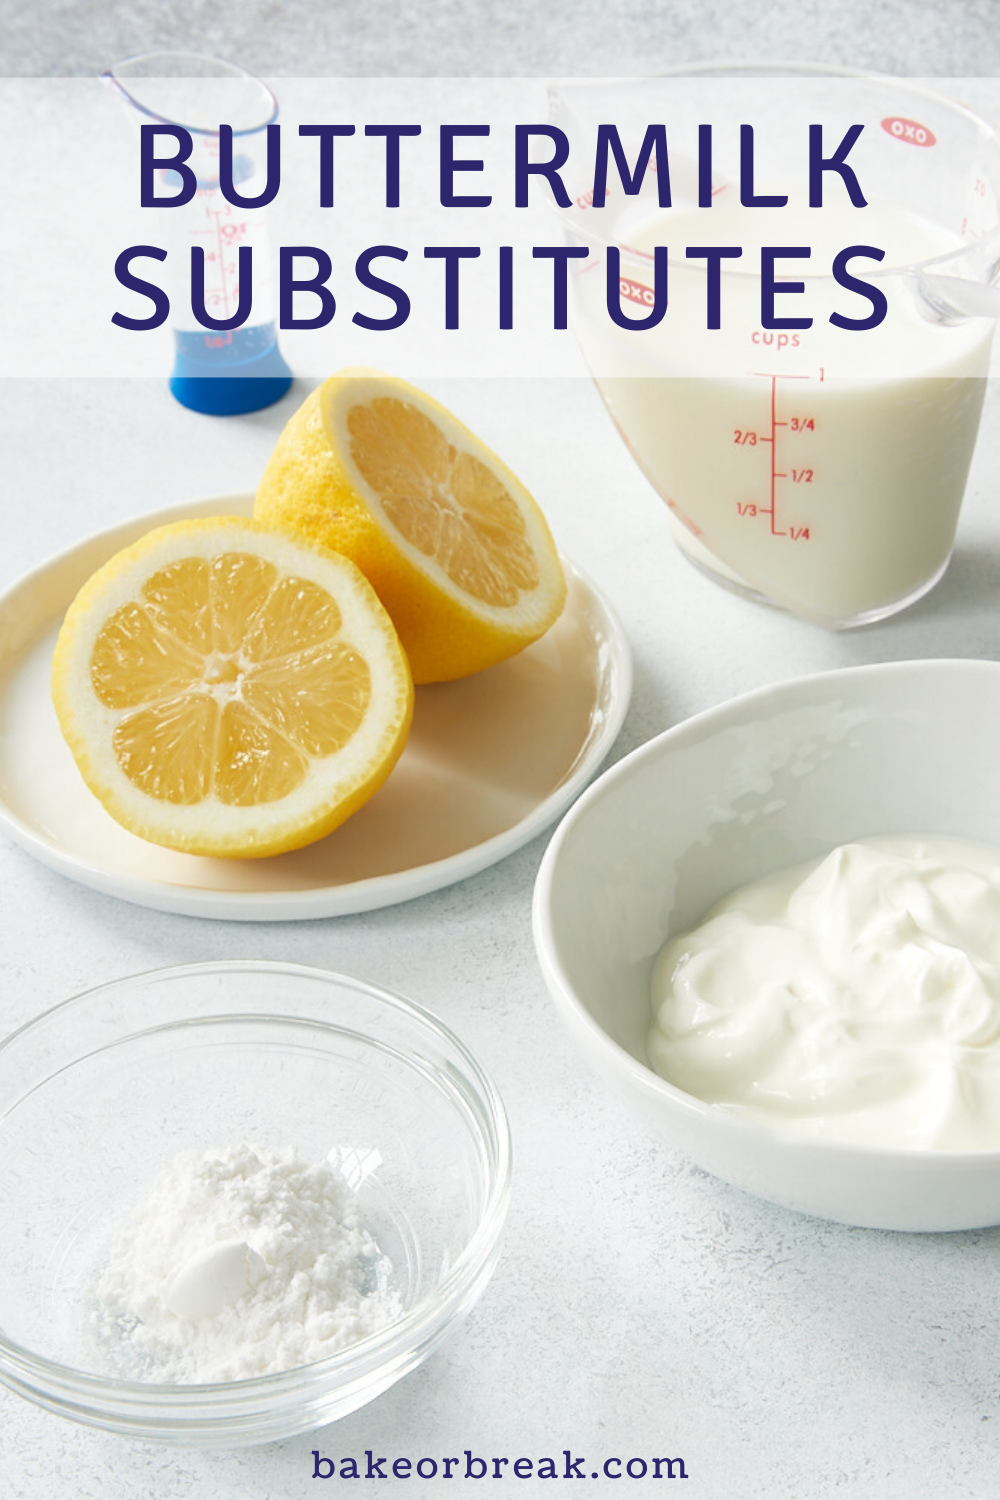 Buttermilk Substitutes In Baking In 2020 Buttermilk Substitute Baking Ingredients Substitutions Baking Substitutes